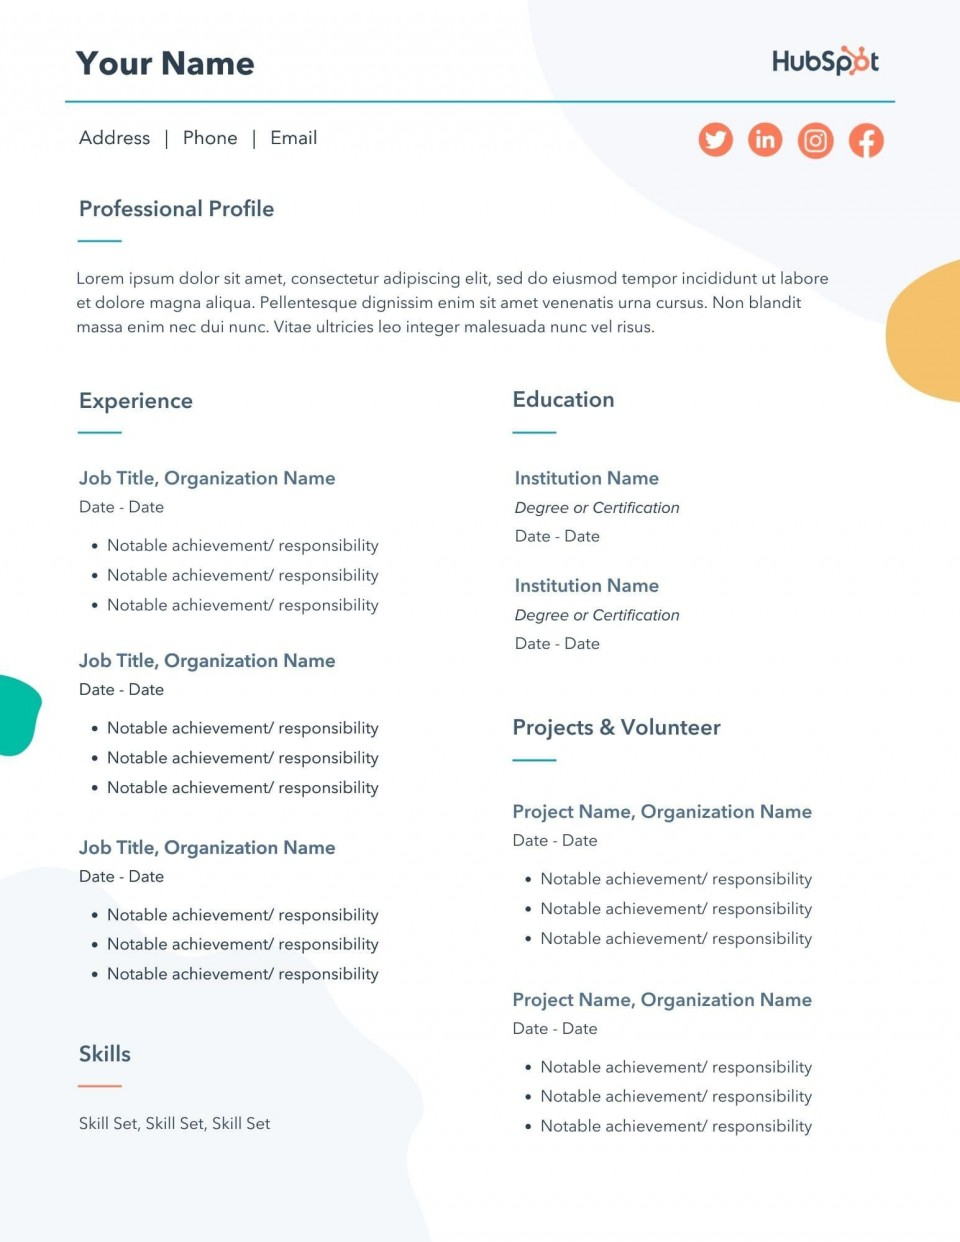 008 Impressive How To Create A Resume Template In Word 2020 Inspiration 960